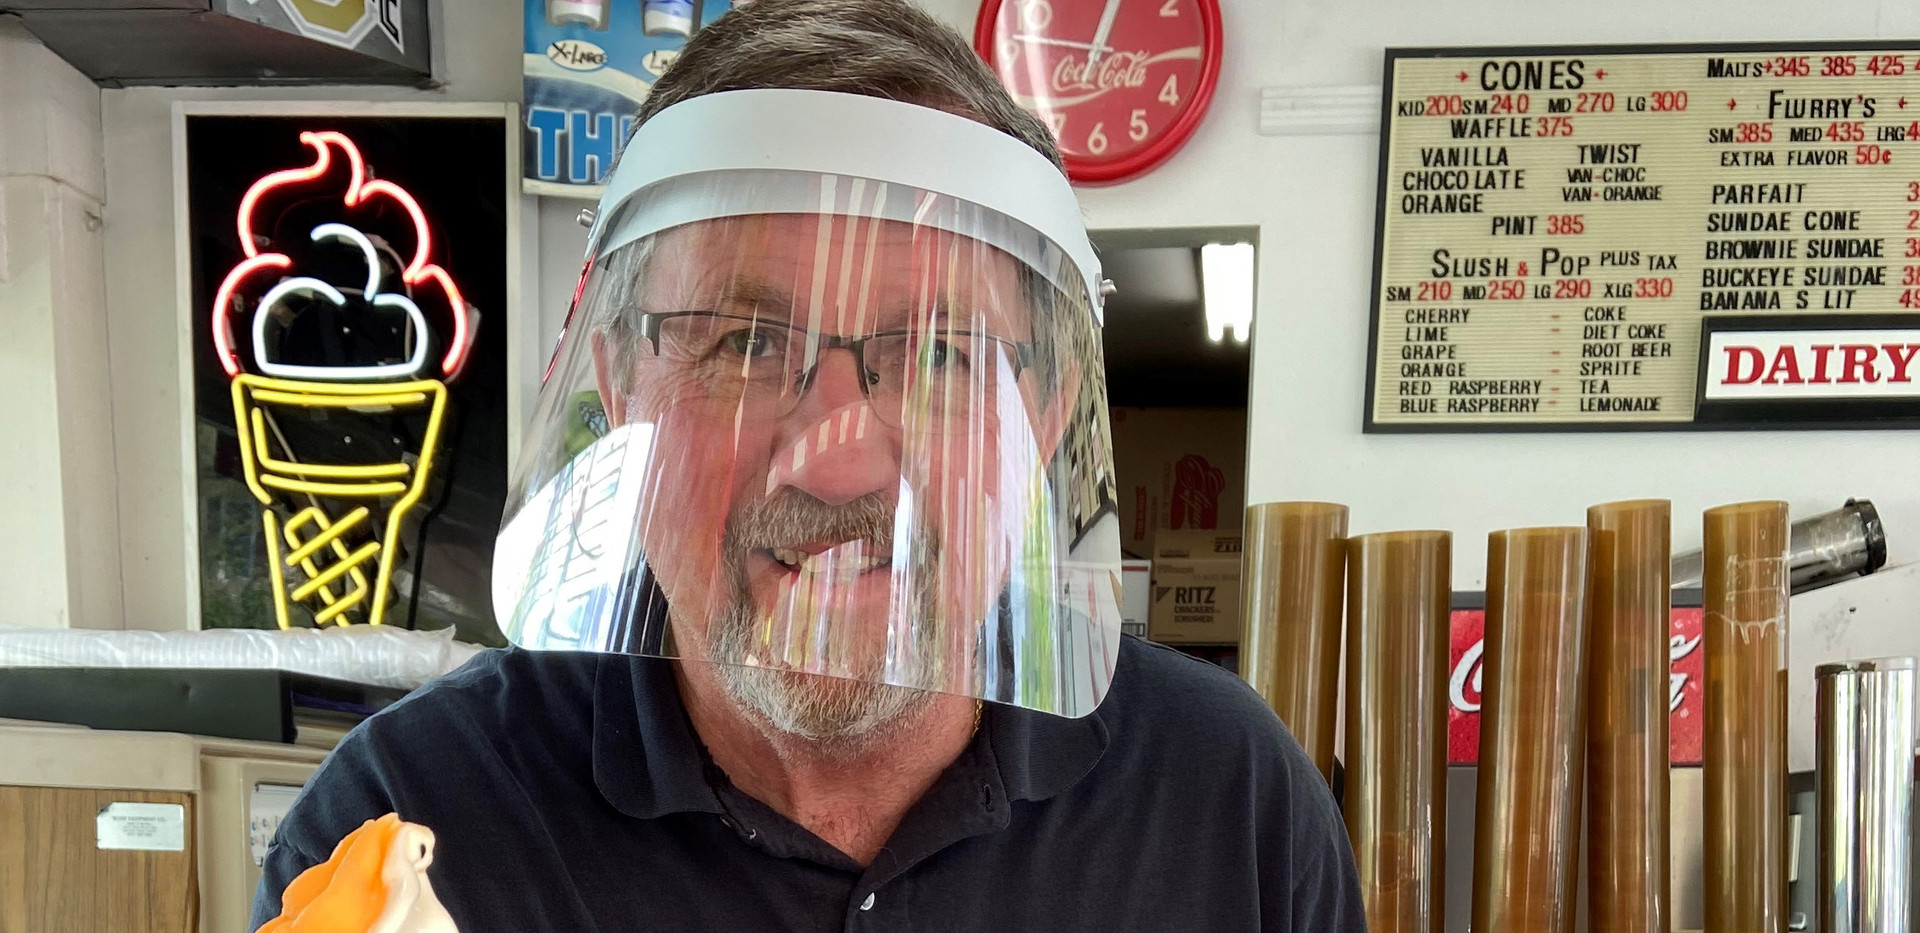 Food Service Face Shields